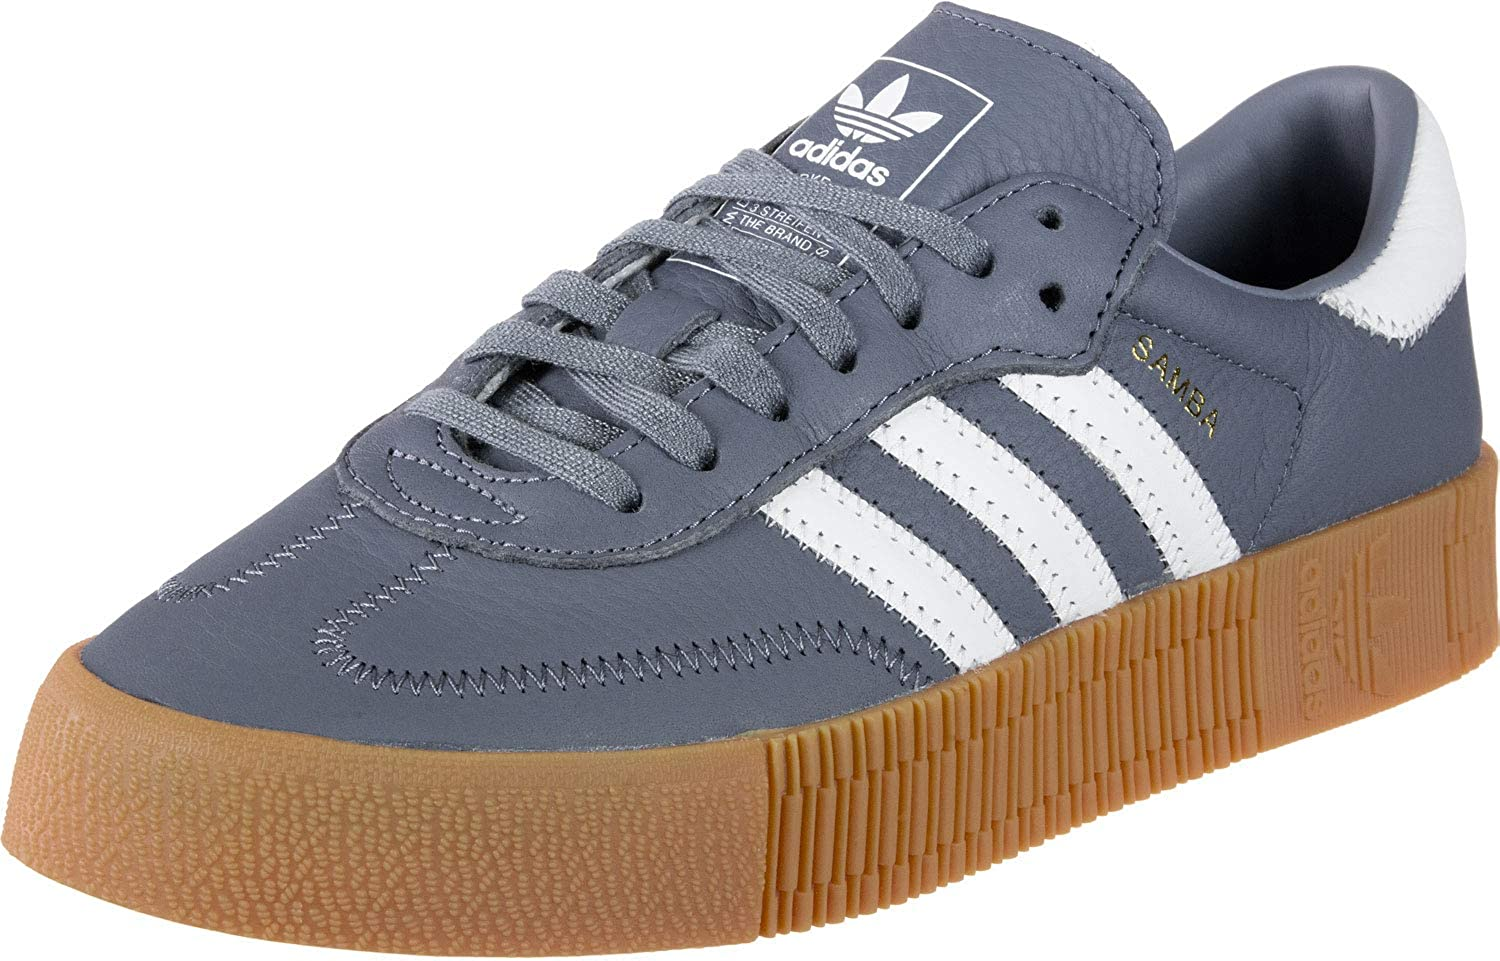 Psicologicamente Cría aparato  Amazon.com | Buty adidas Originals Sambarose DB2695 - 6, 5 | Fashion  Sneakers